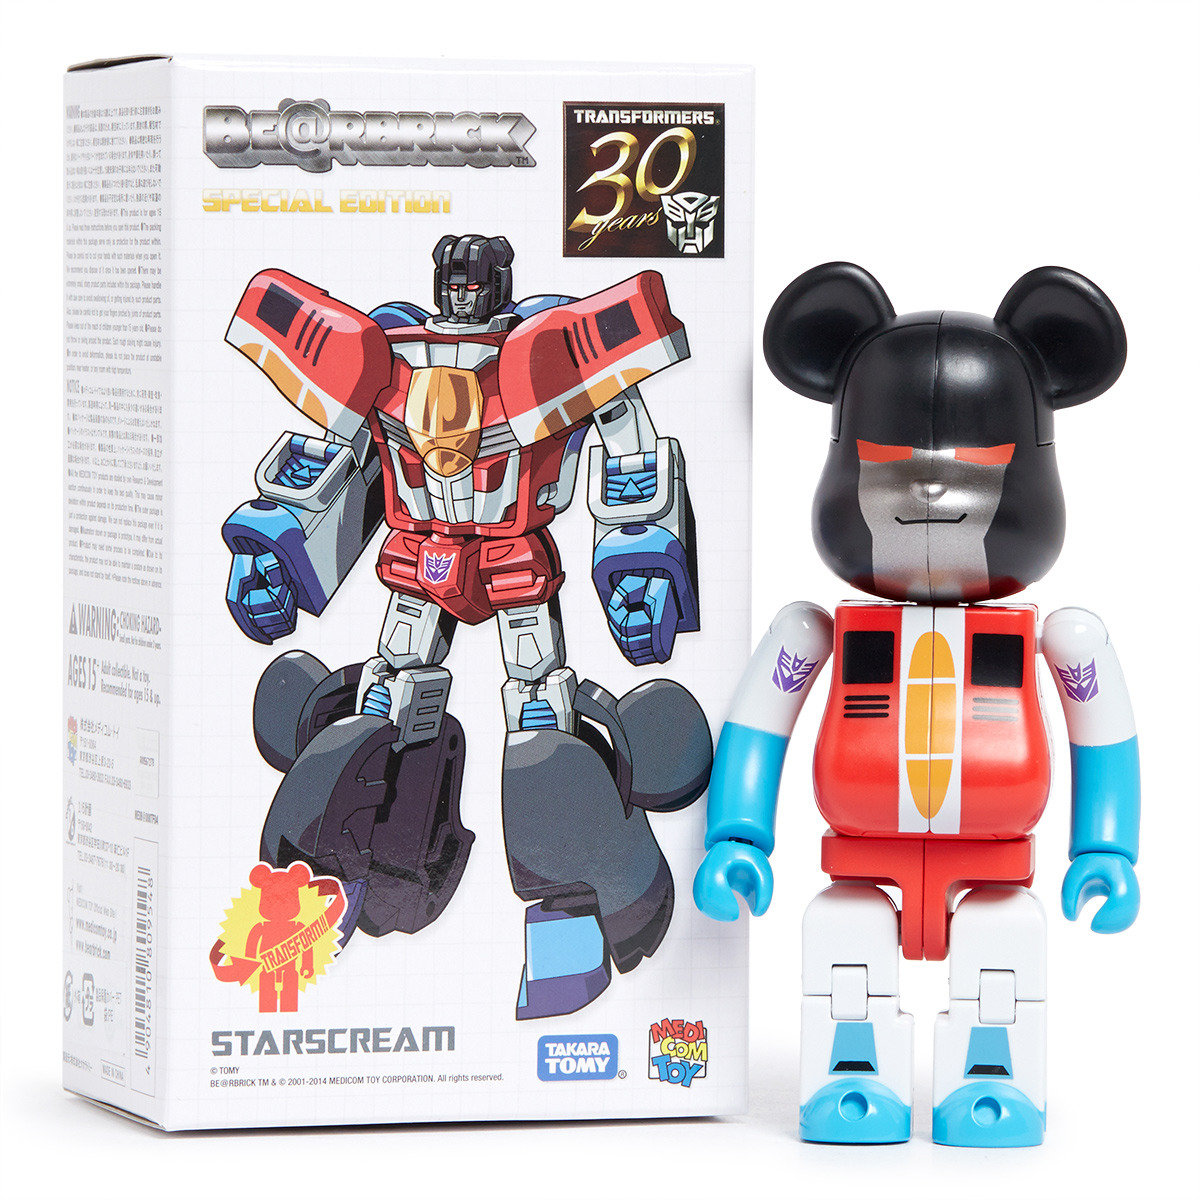 Be@rbrick x Transformers: STARSCREAM